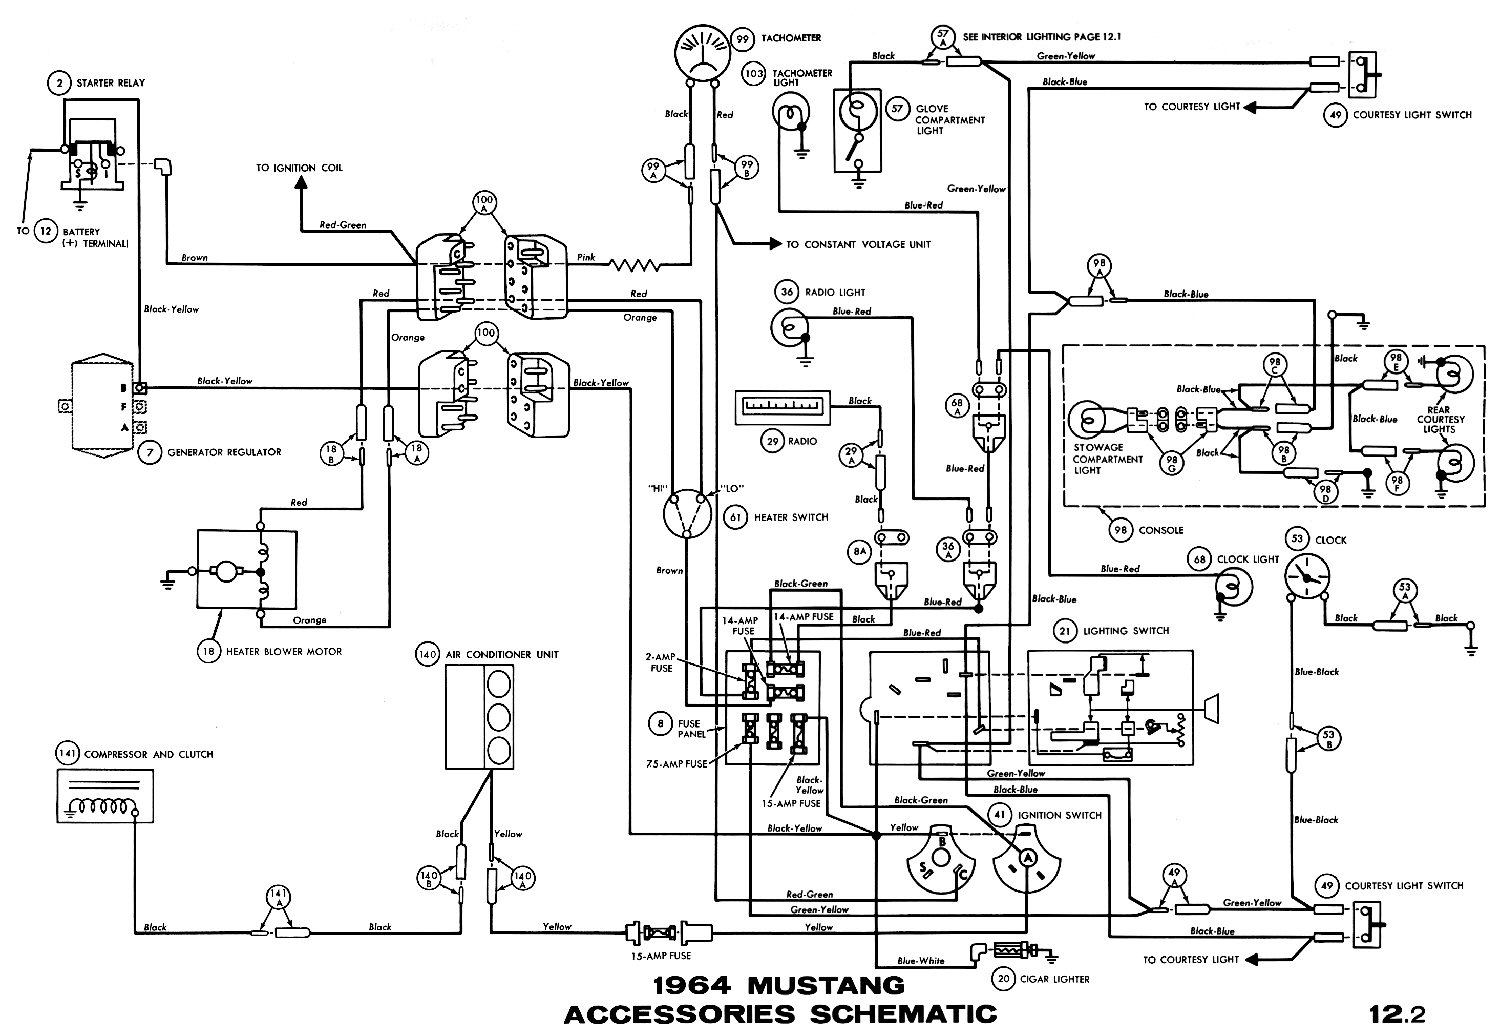 1964m 1964 mustang wiring diagrams average joe restoration 2000 ford mustang radio wiring diagram at alyssarenee.co